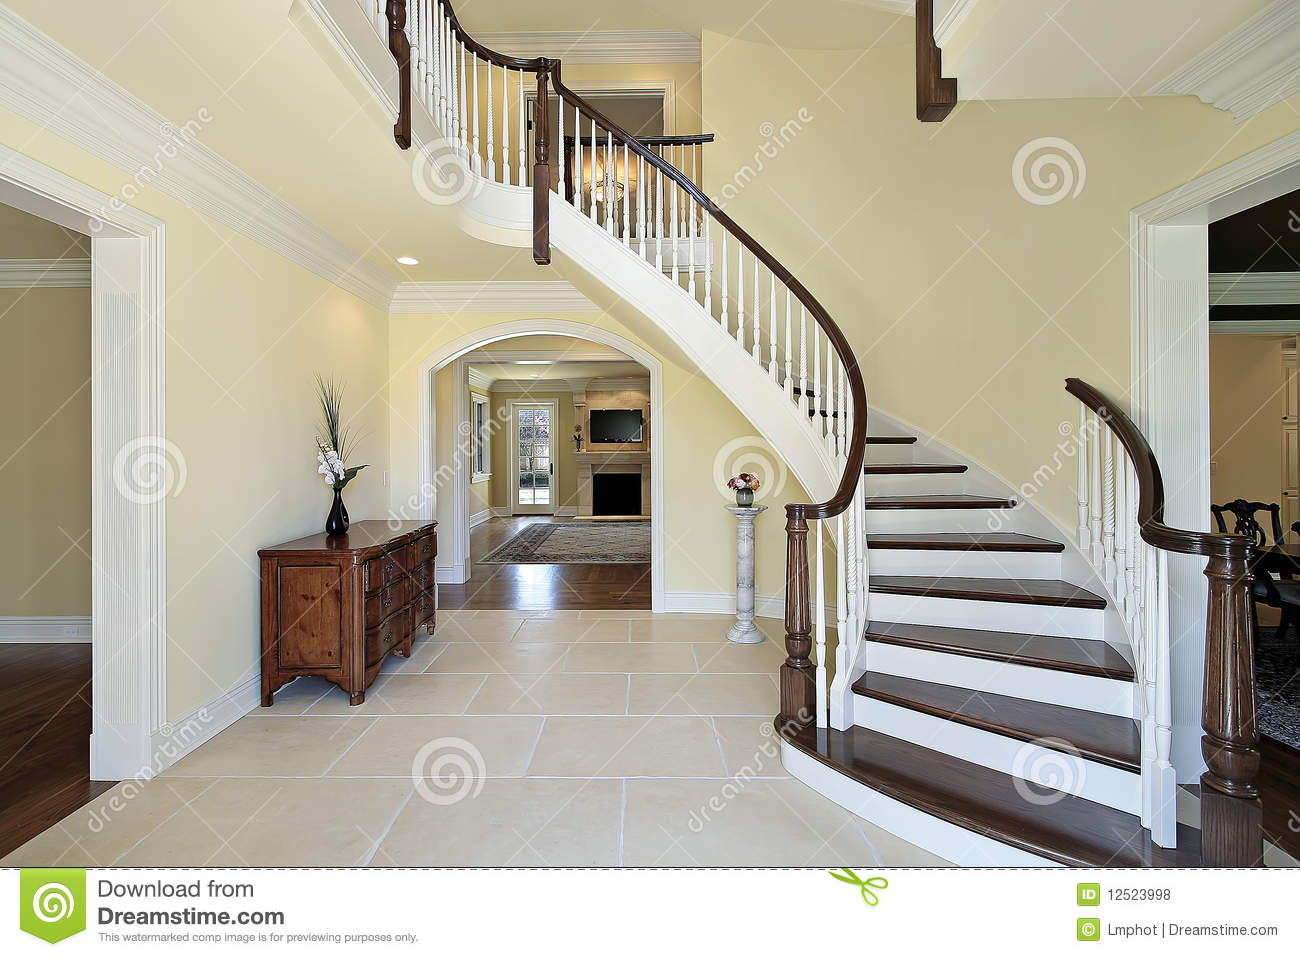 3d Brick Wallpaper Philippines Foyer With Curved Staircase Stock Photo Image Of Room